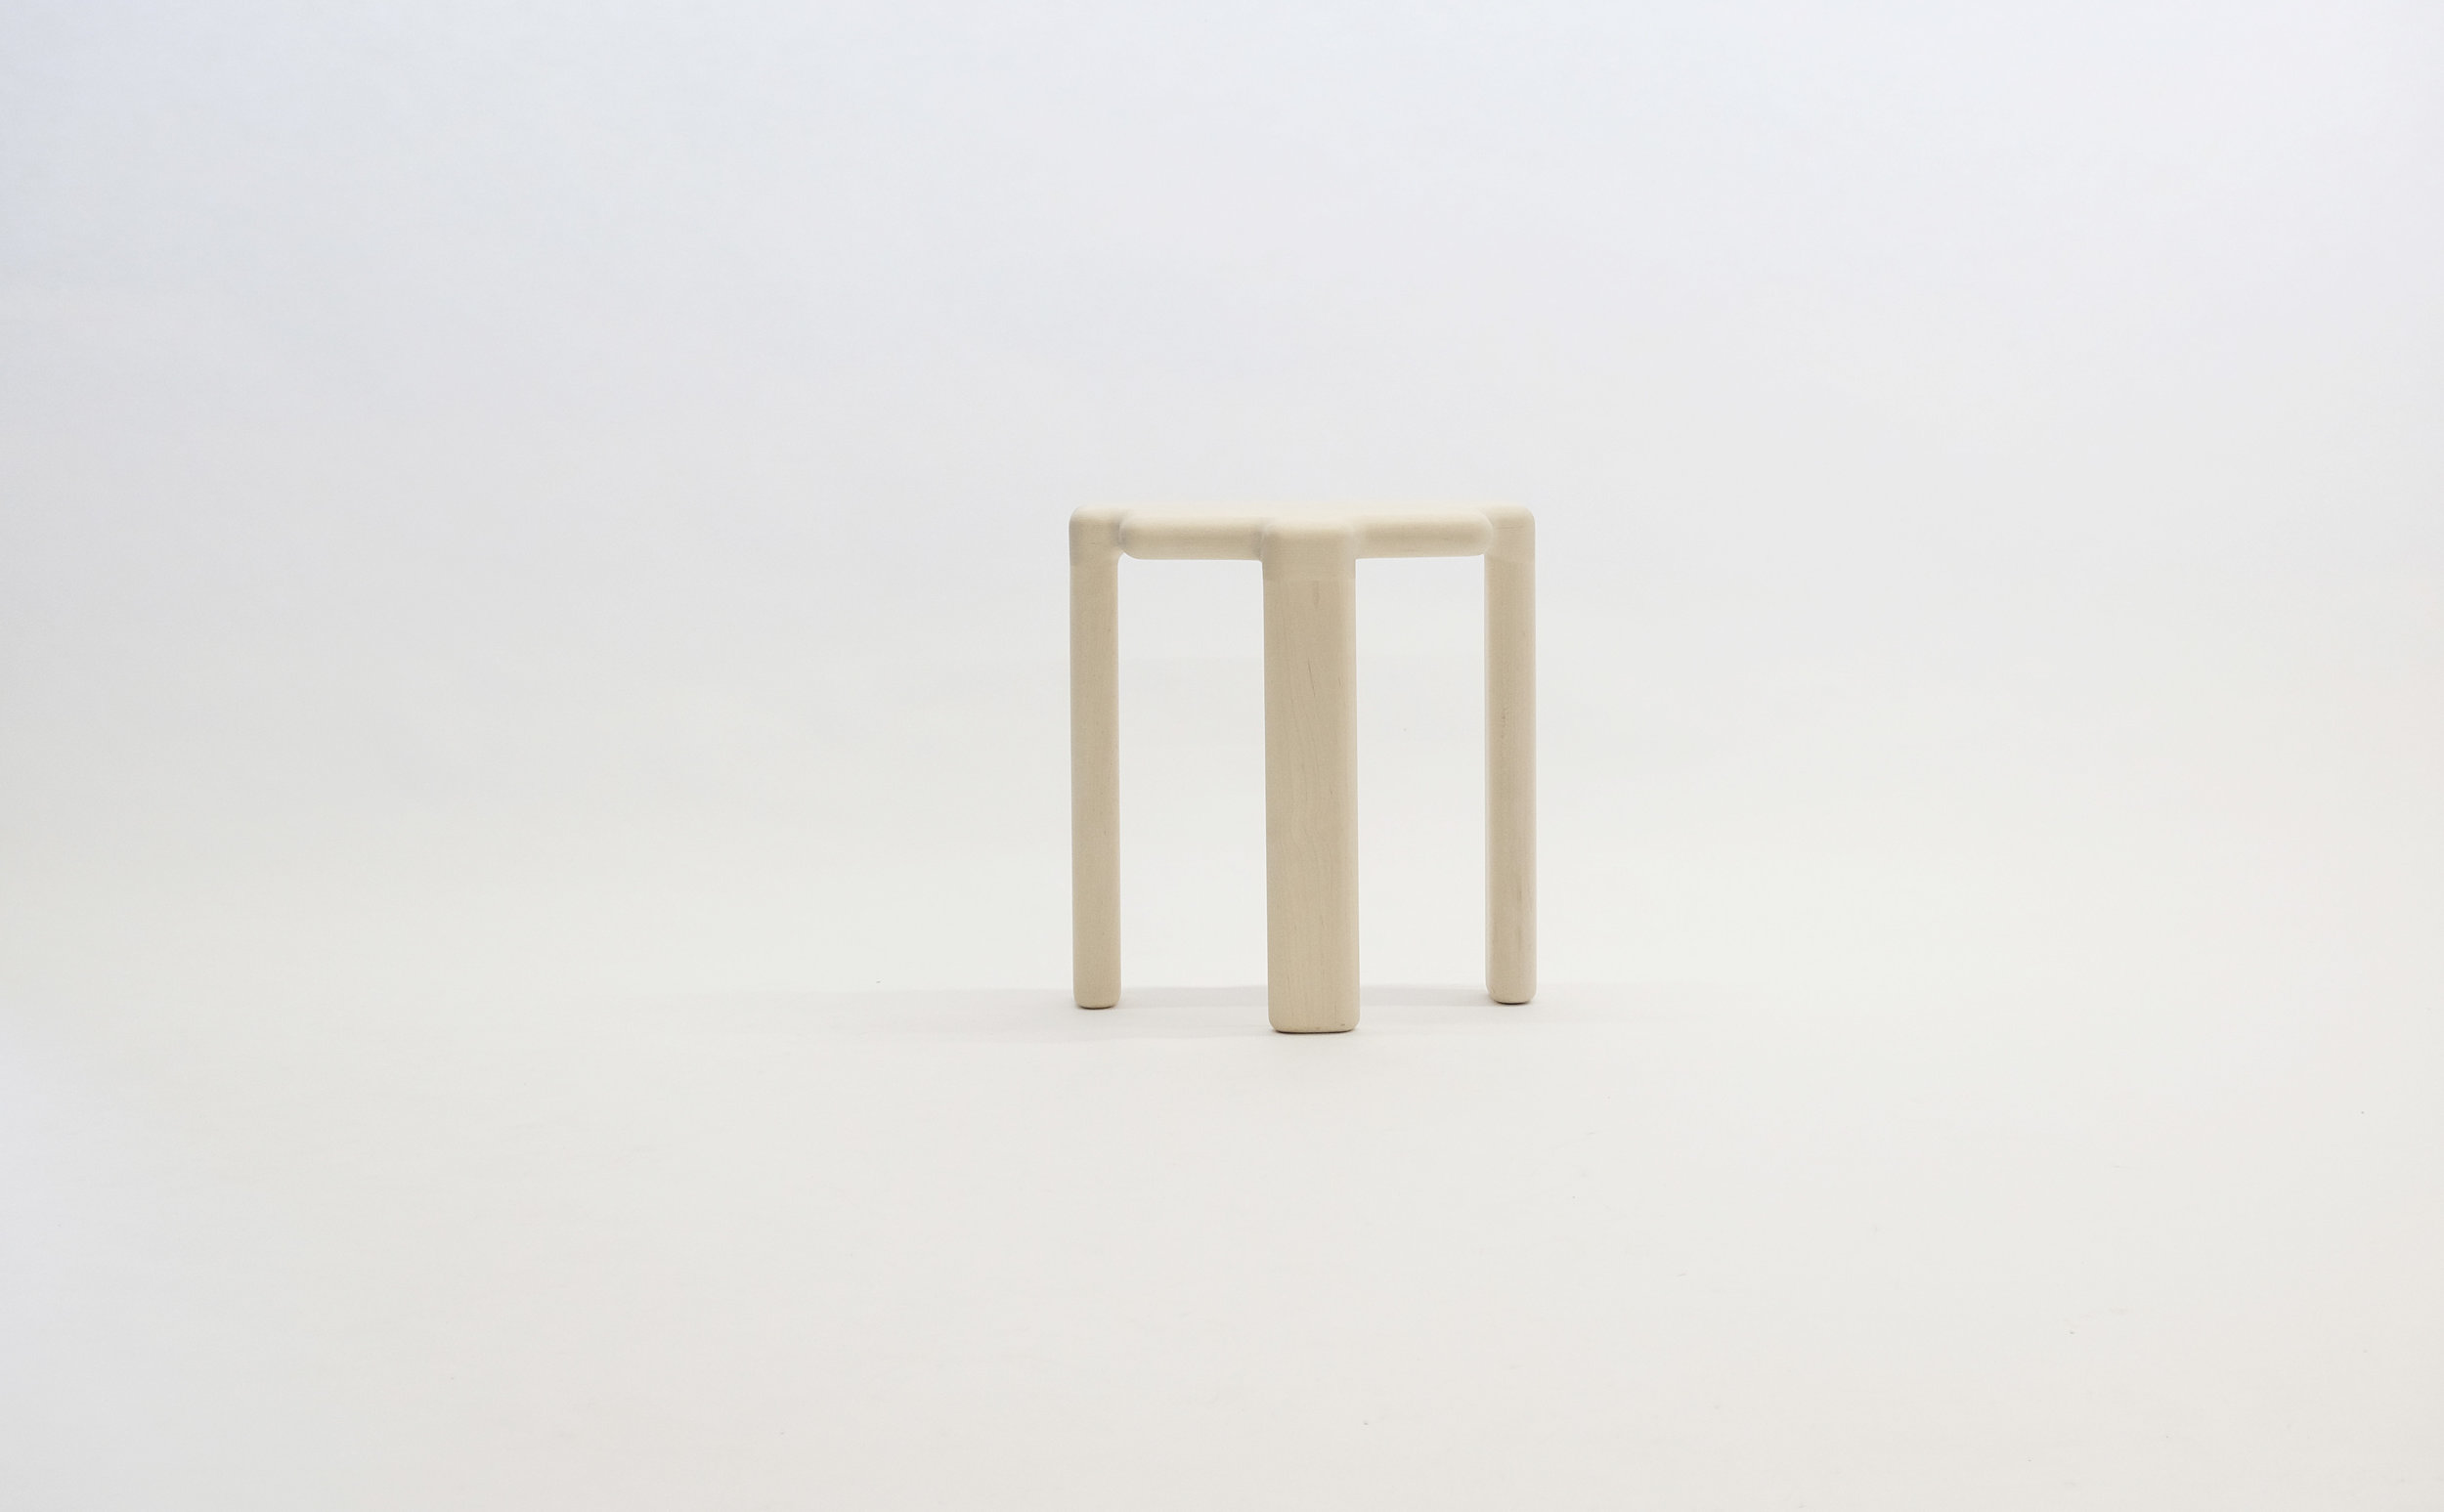 stool_bone_06c_white_loicbard.jpg